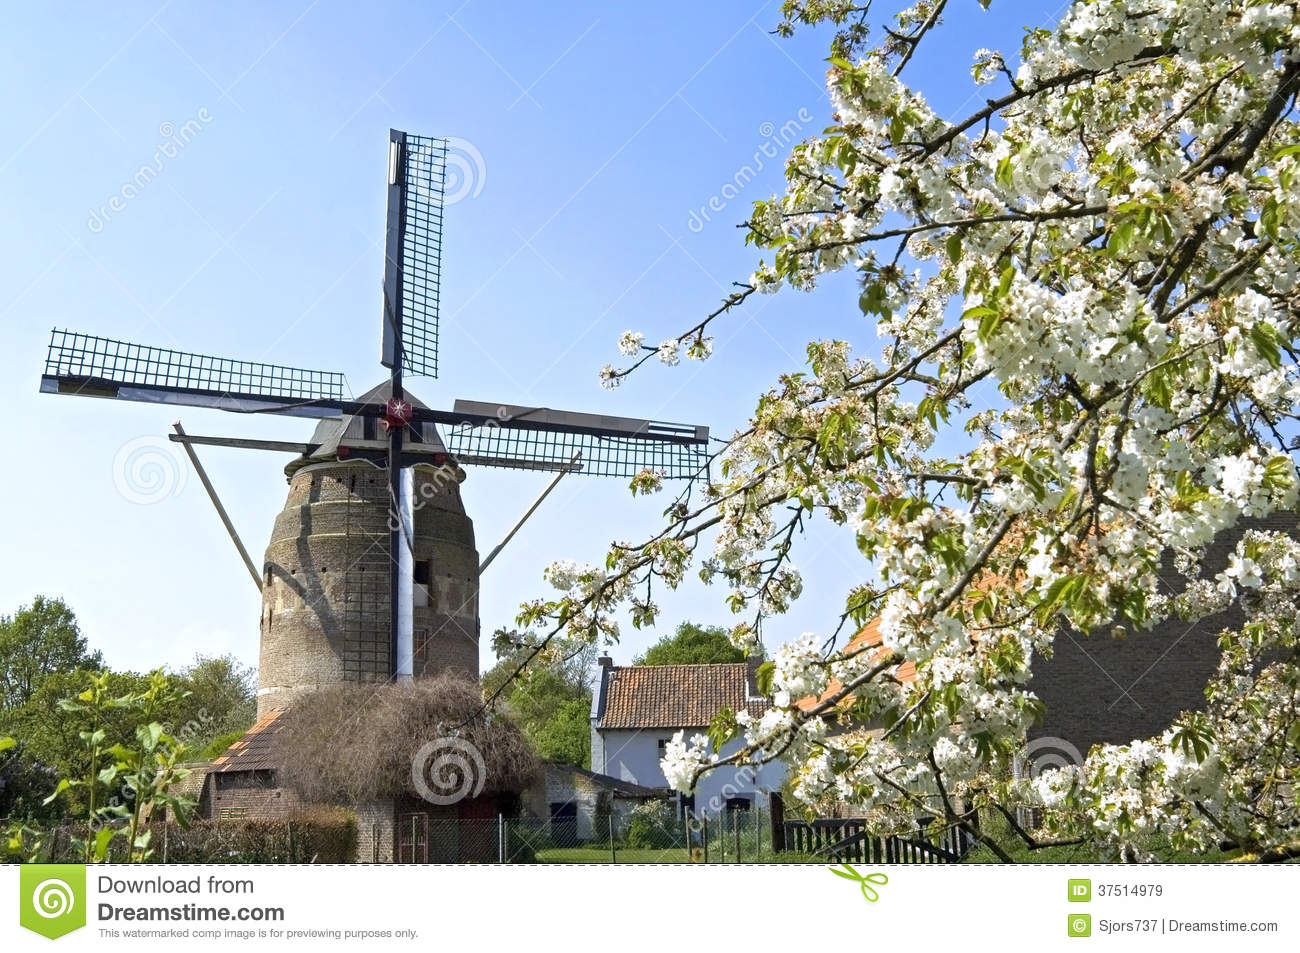 c5c87efdcb9f63 Netherlands, province Limburg, Gronsveld village, municipality Eijsden- Margraten. Blossom Tree for the tower mill. This early 17th century mill  was built by ...